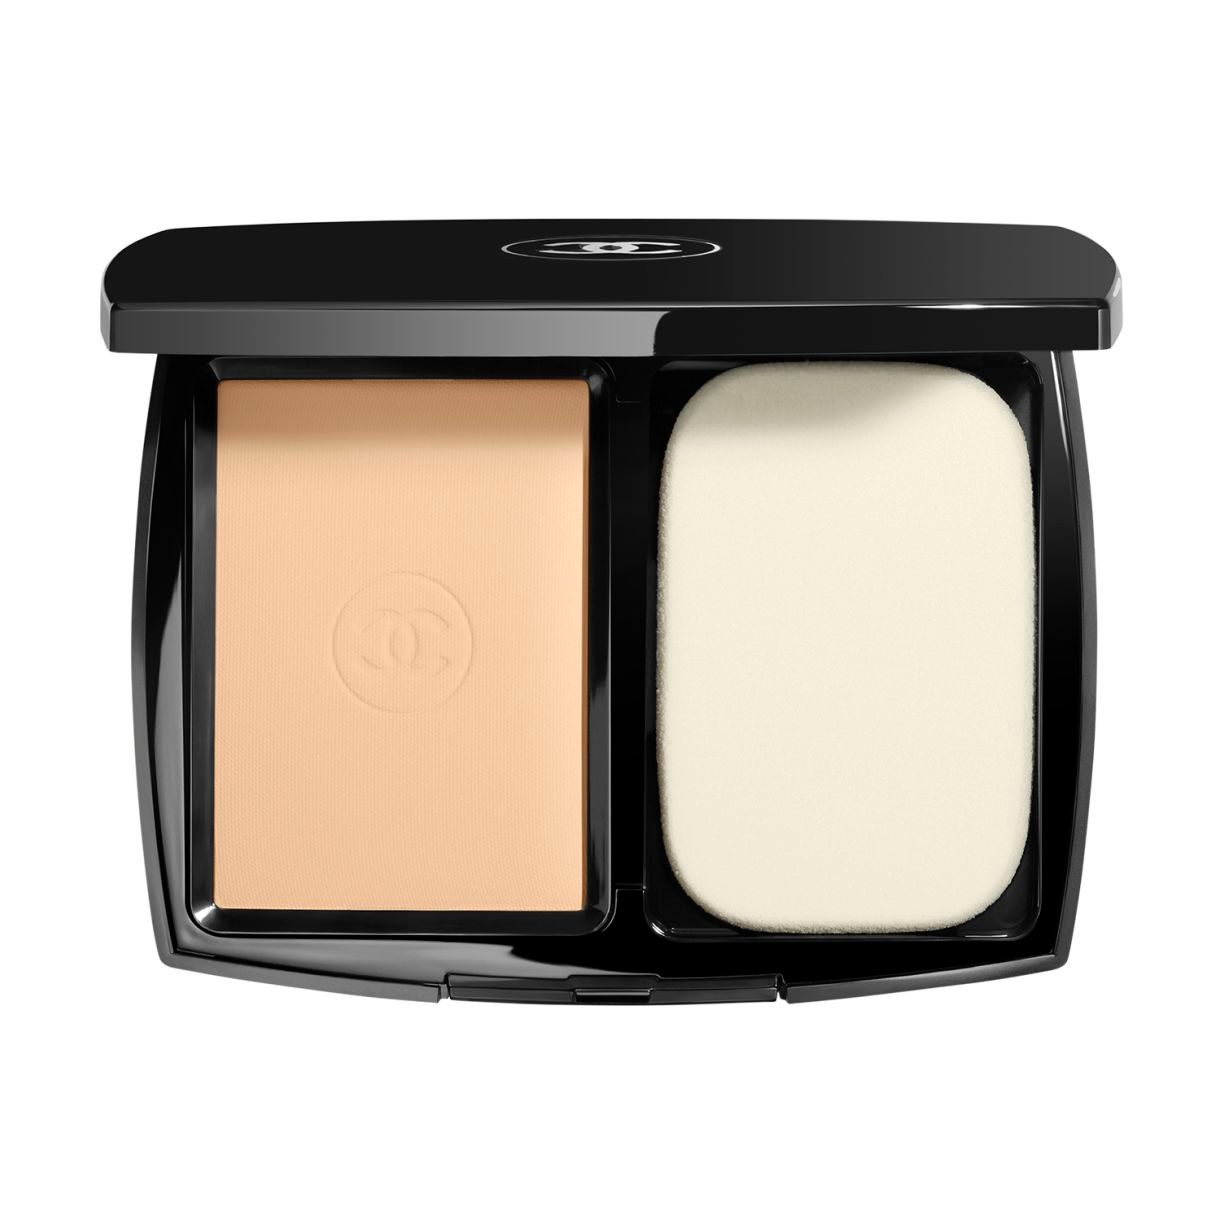 LE TEINT ULTRA TENUE TEINT COMPACT HAUTE PERFECTION